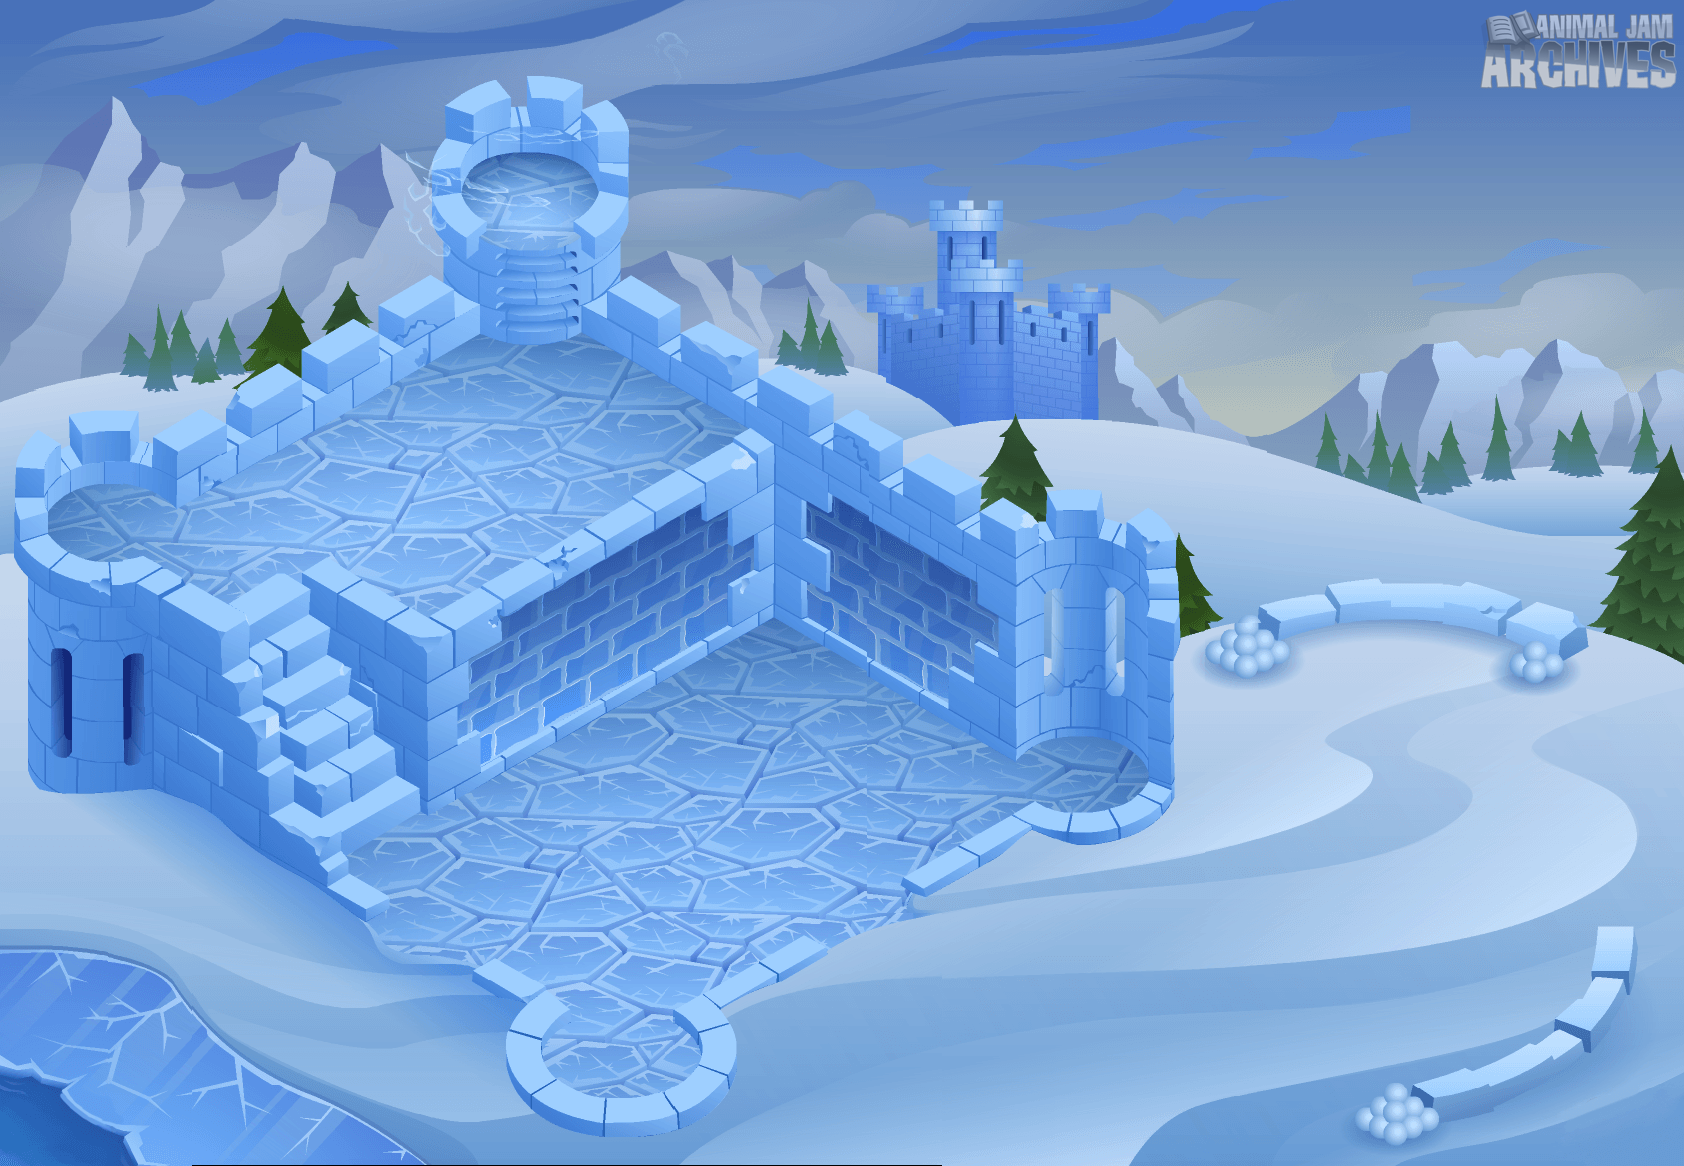 Snow Fort Map